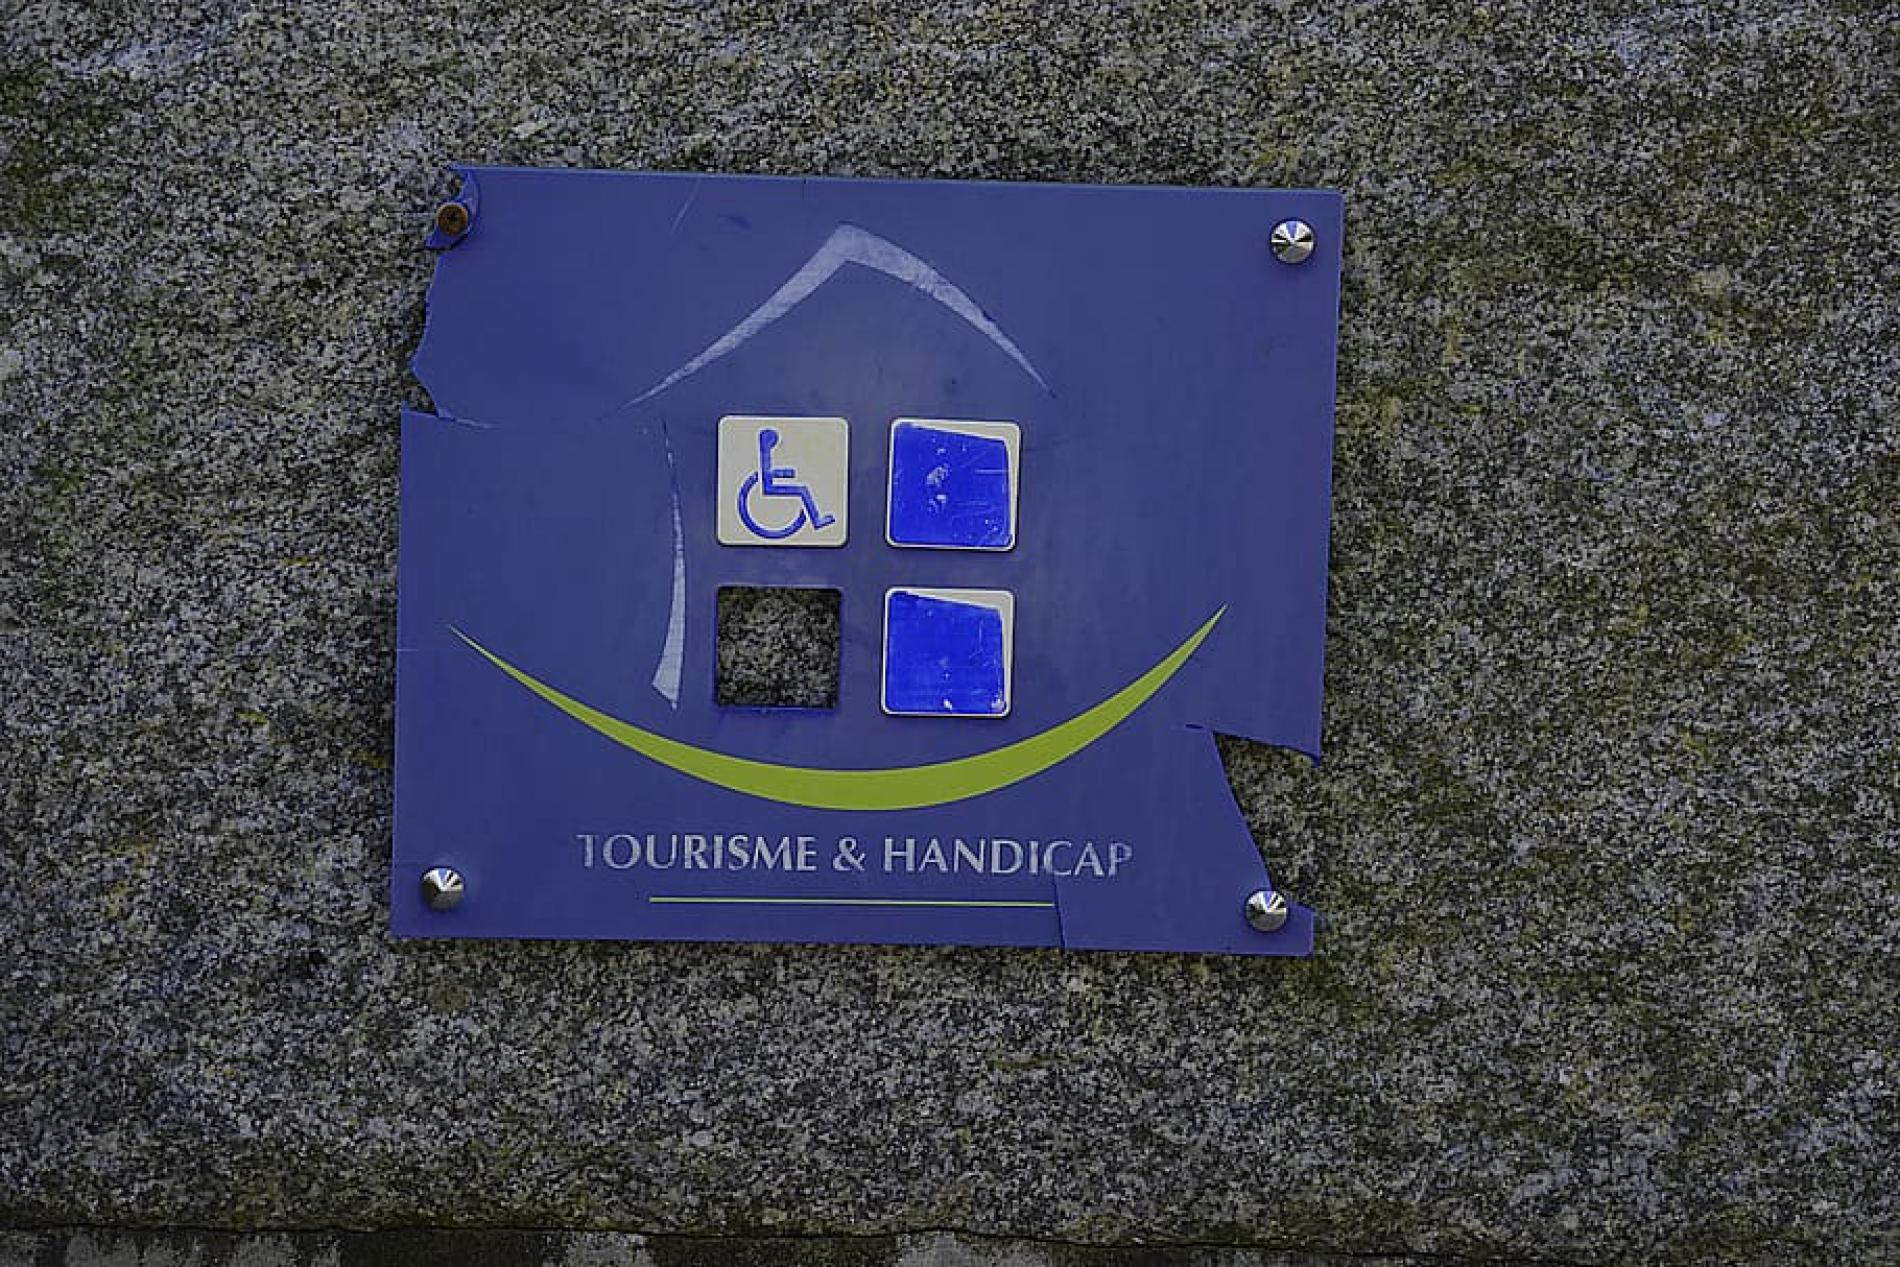 ACCESS FOR HANDICAPPED GUESTS